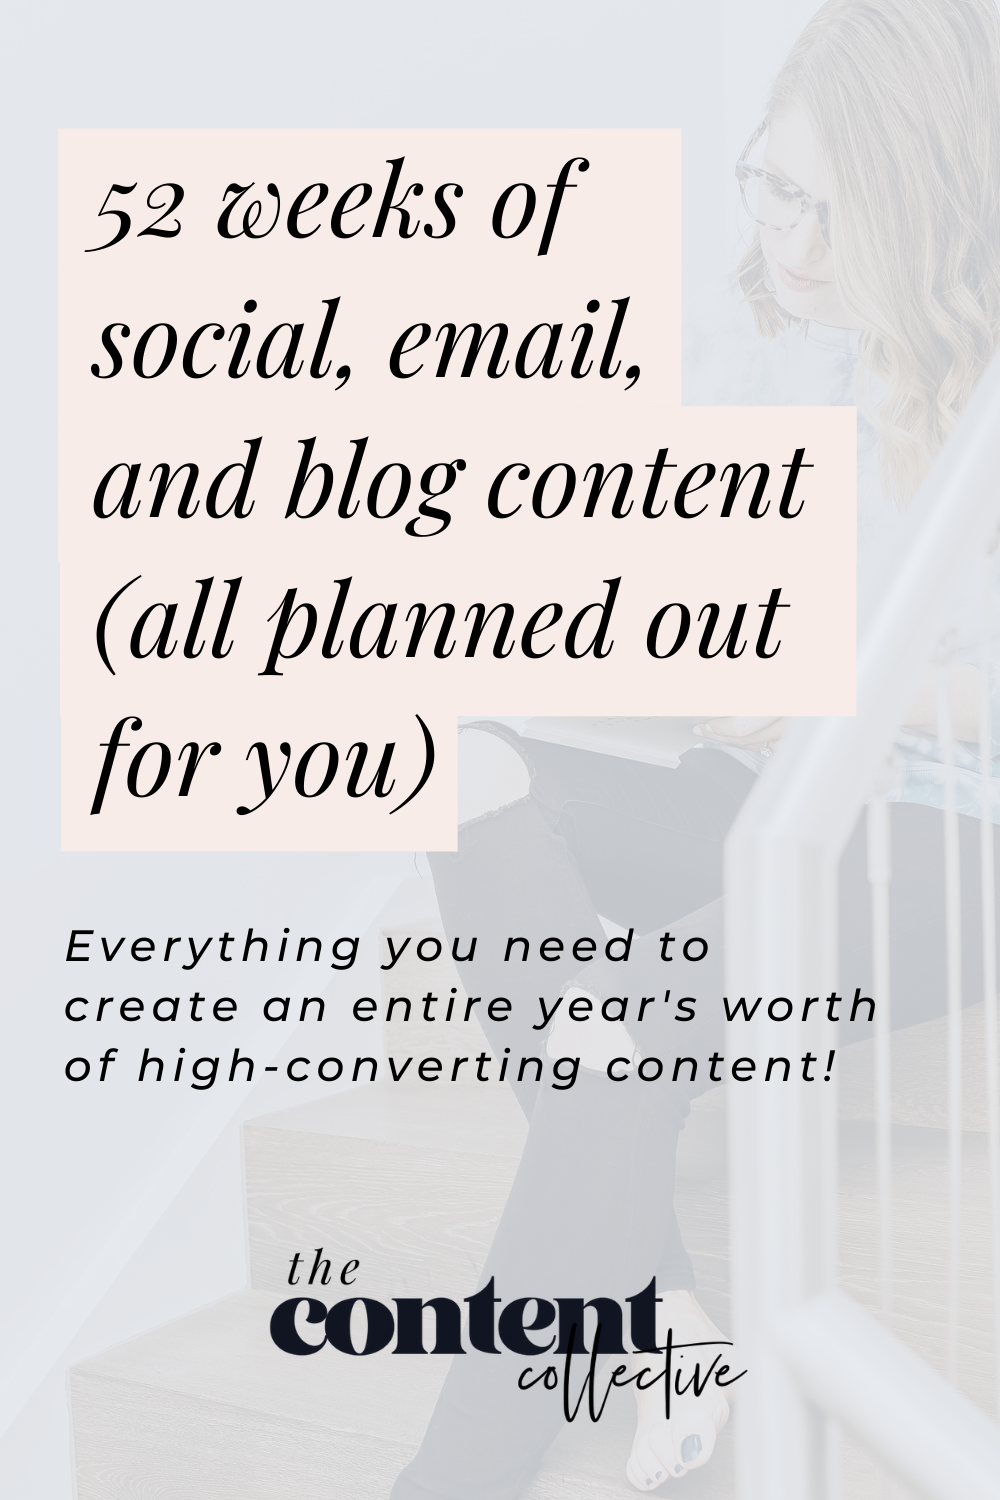 52 Weeks of Social, Email, and Blog Content - Planned Out For You!